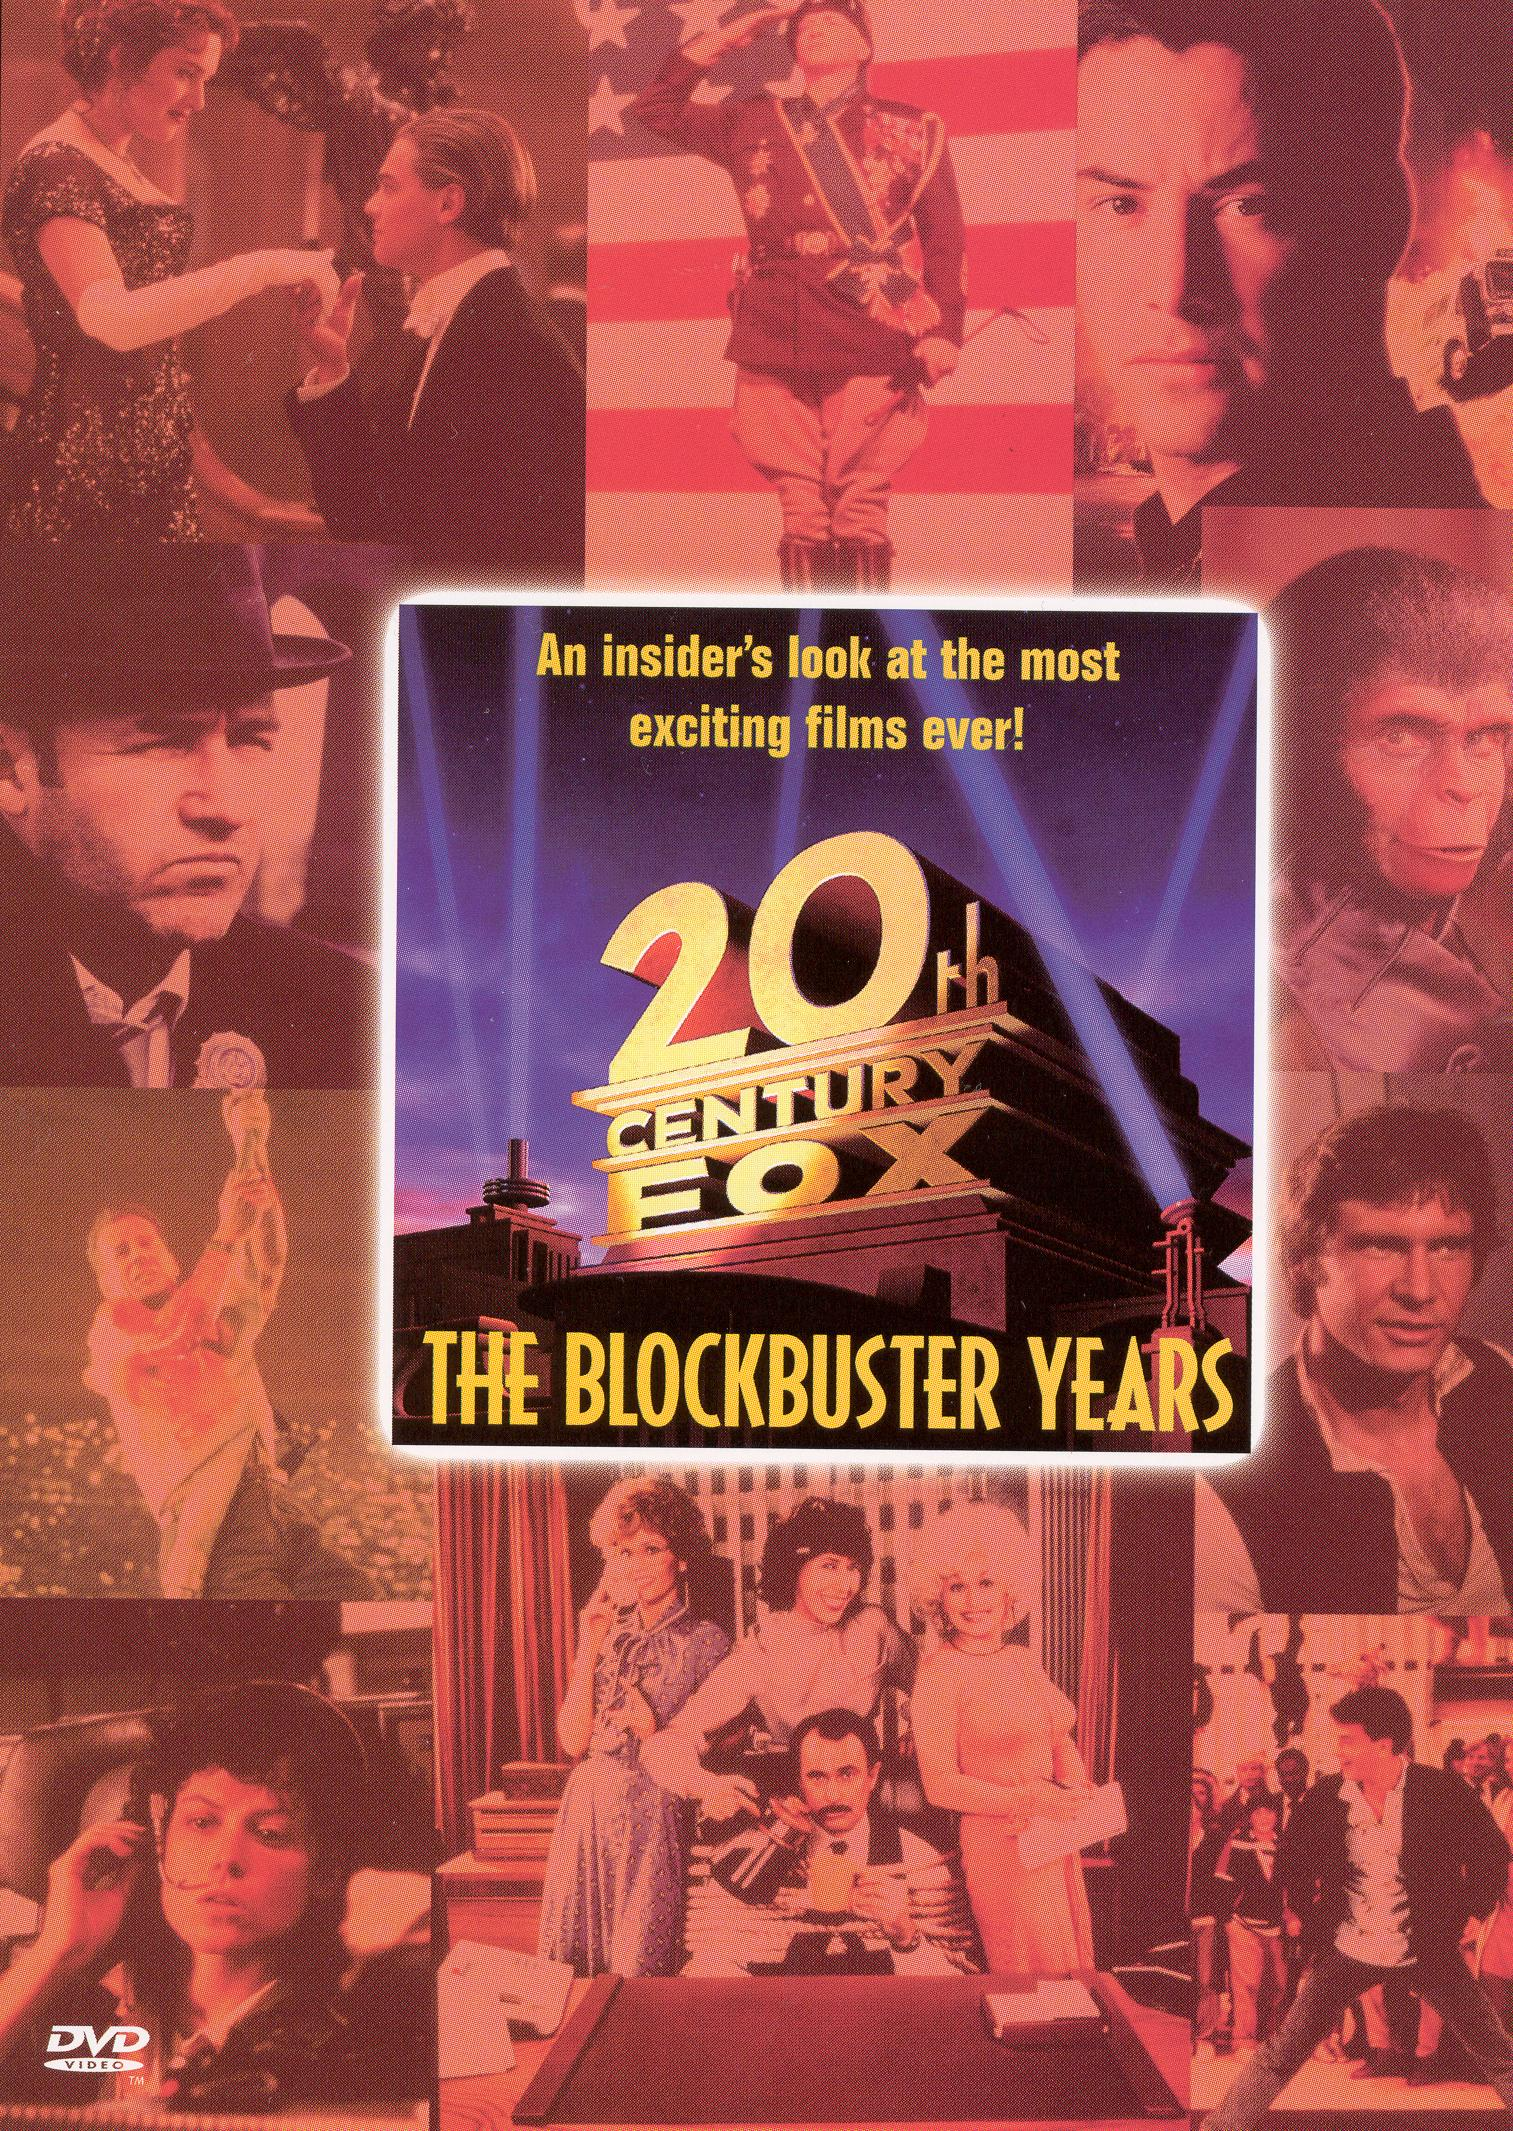 20th Century Fox: The Blockbuster Years